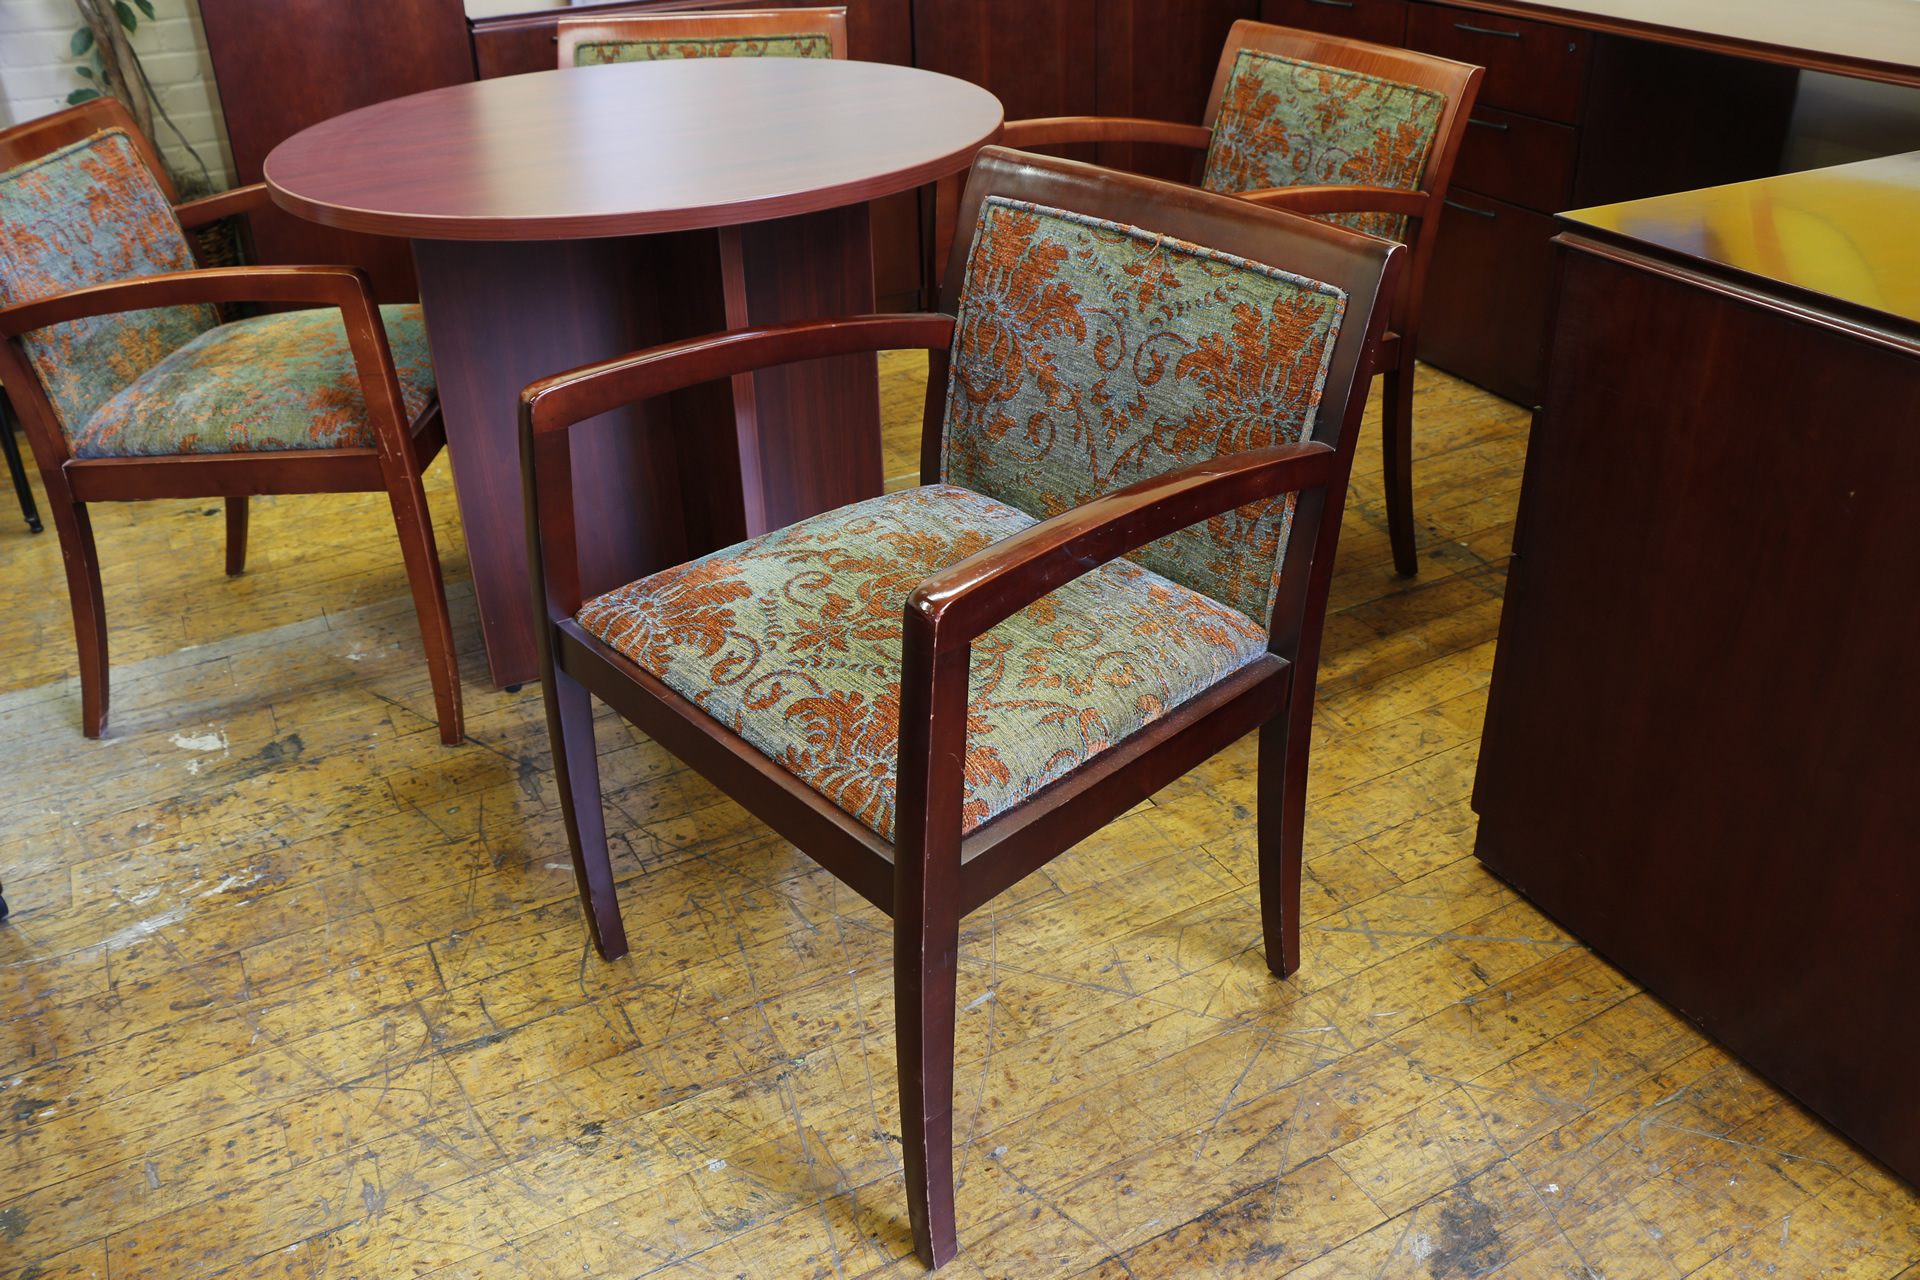 peartreeofficefurniture_peartreeofficefurniture_mg_4245.jpg